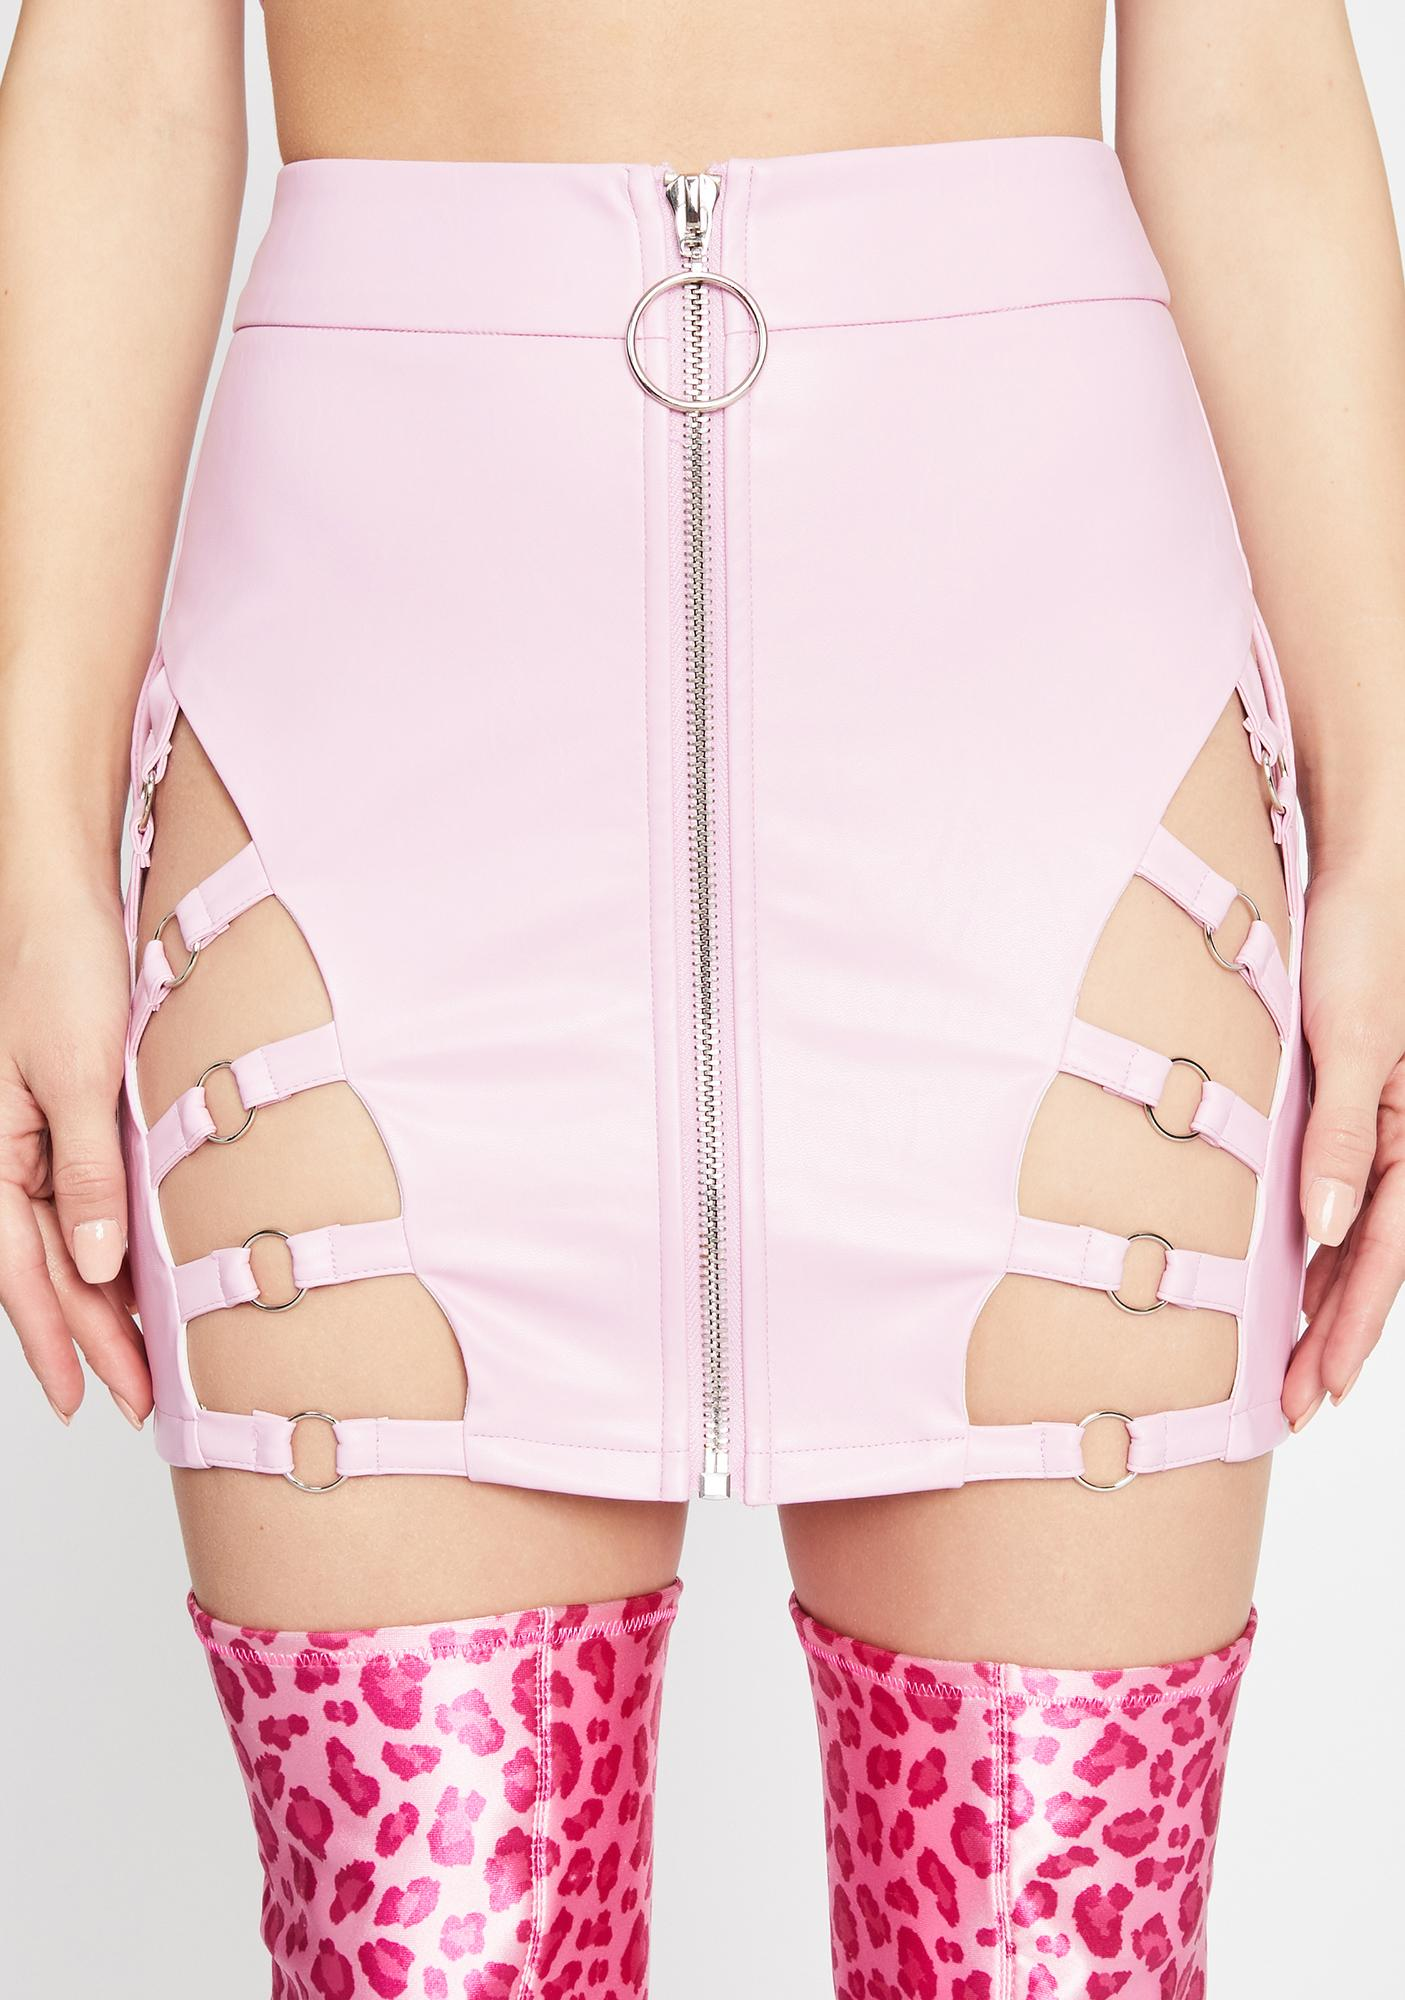 Iconic Kinks Cut-Out Skirt